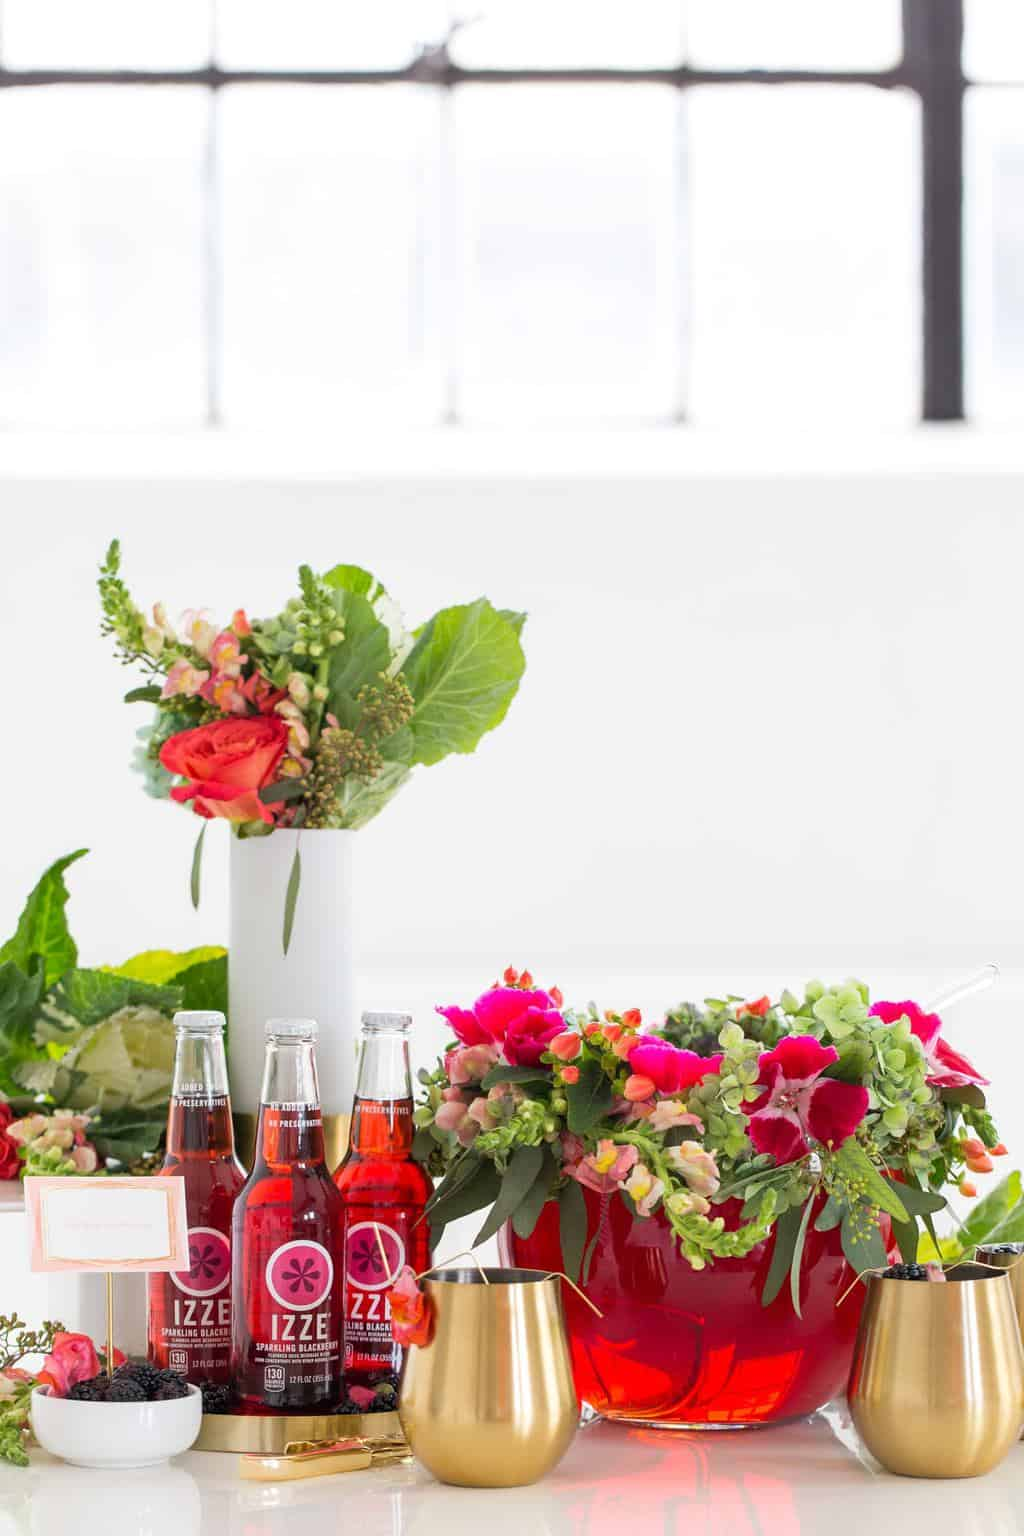 DIY Floral Punch Bowl Wreath + Sparkling Blackberry Mocktail Recipe by top Houston lifestyle blogger Ashley Rose of Sugar & Cloth